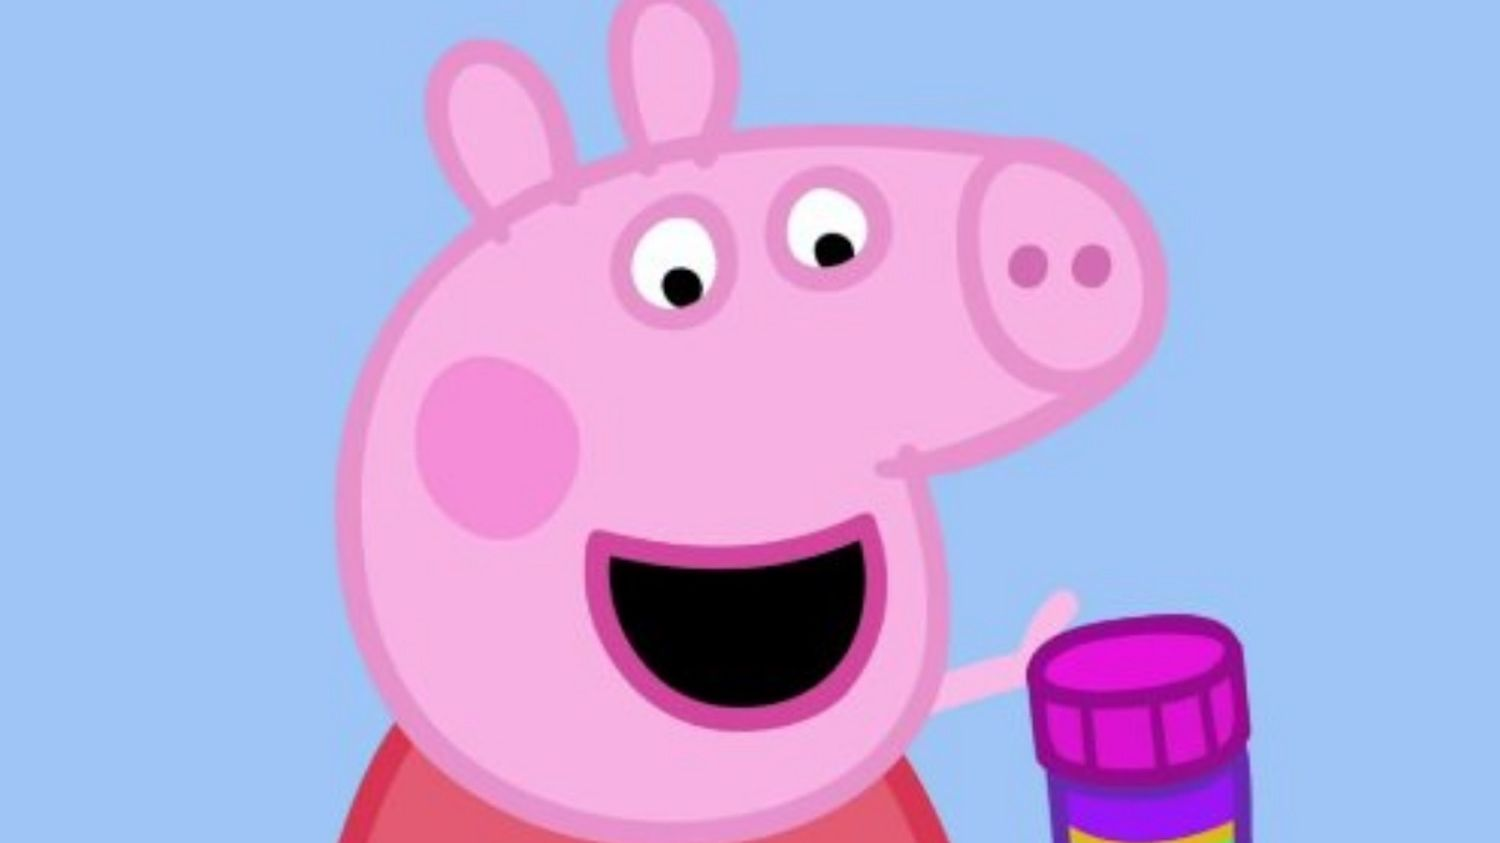 The Peppa Pig Episode Kids in Australia Can't See | Mental ...